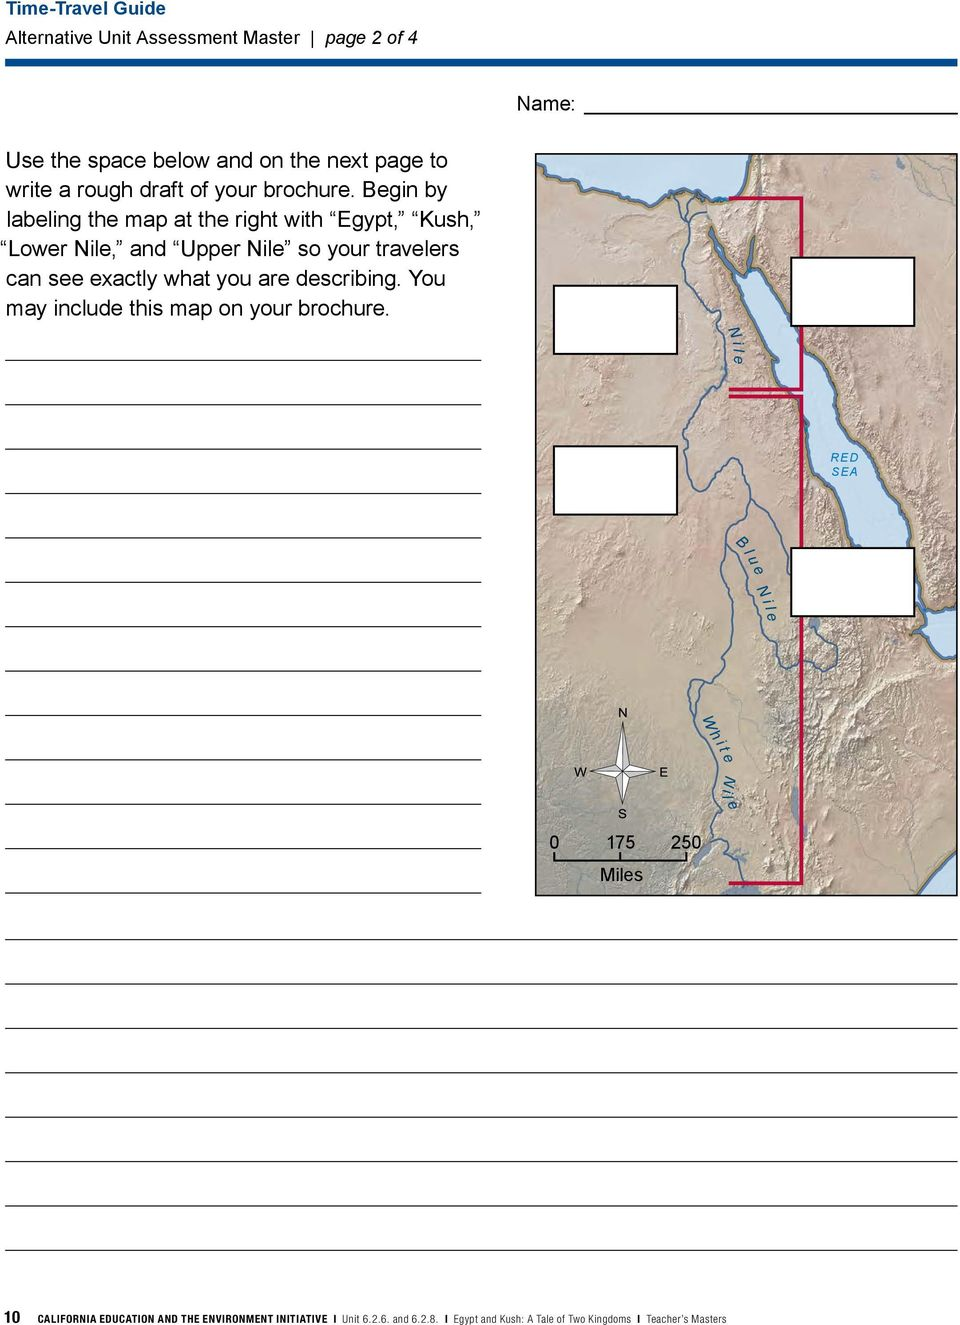 Begin by labeling the map at the right with Egypt, Kush, Lower Nile, and Upper Nile so your travelers can see exactly what you are describing.